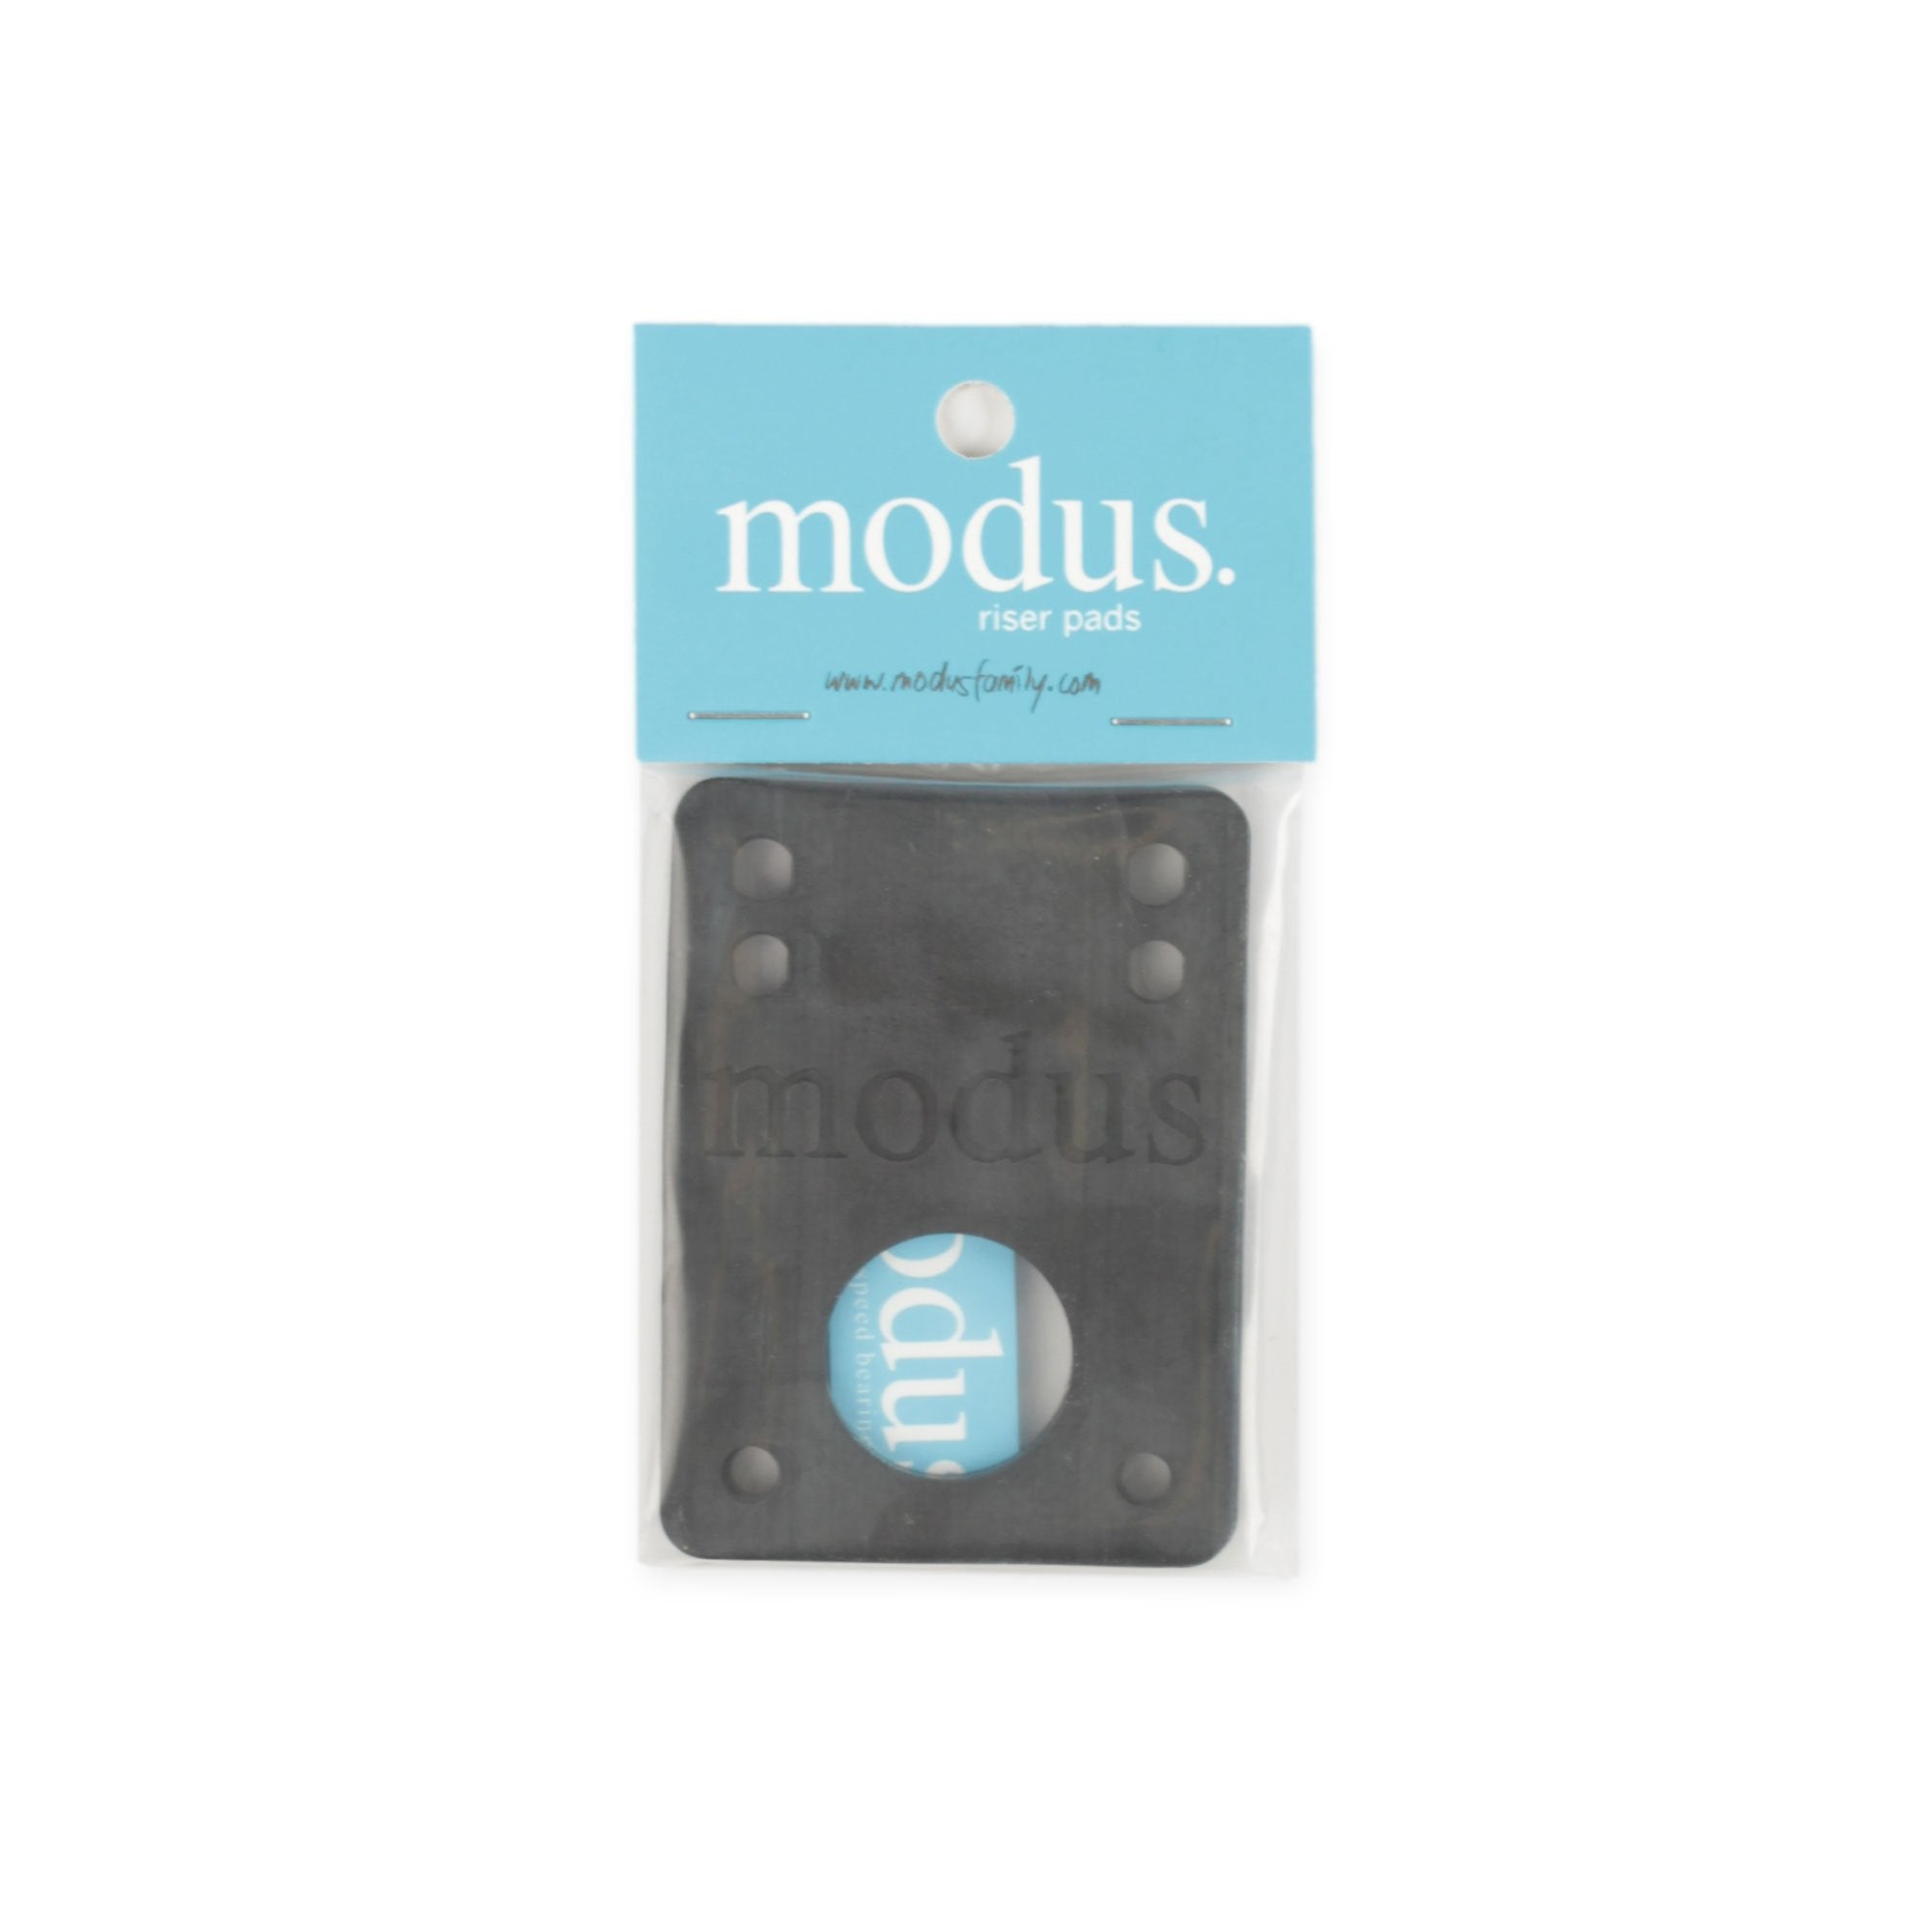 Modus Riser Pads Product Photo #1